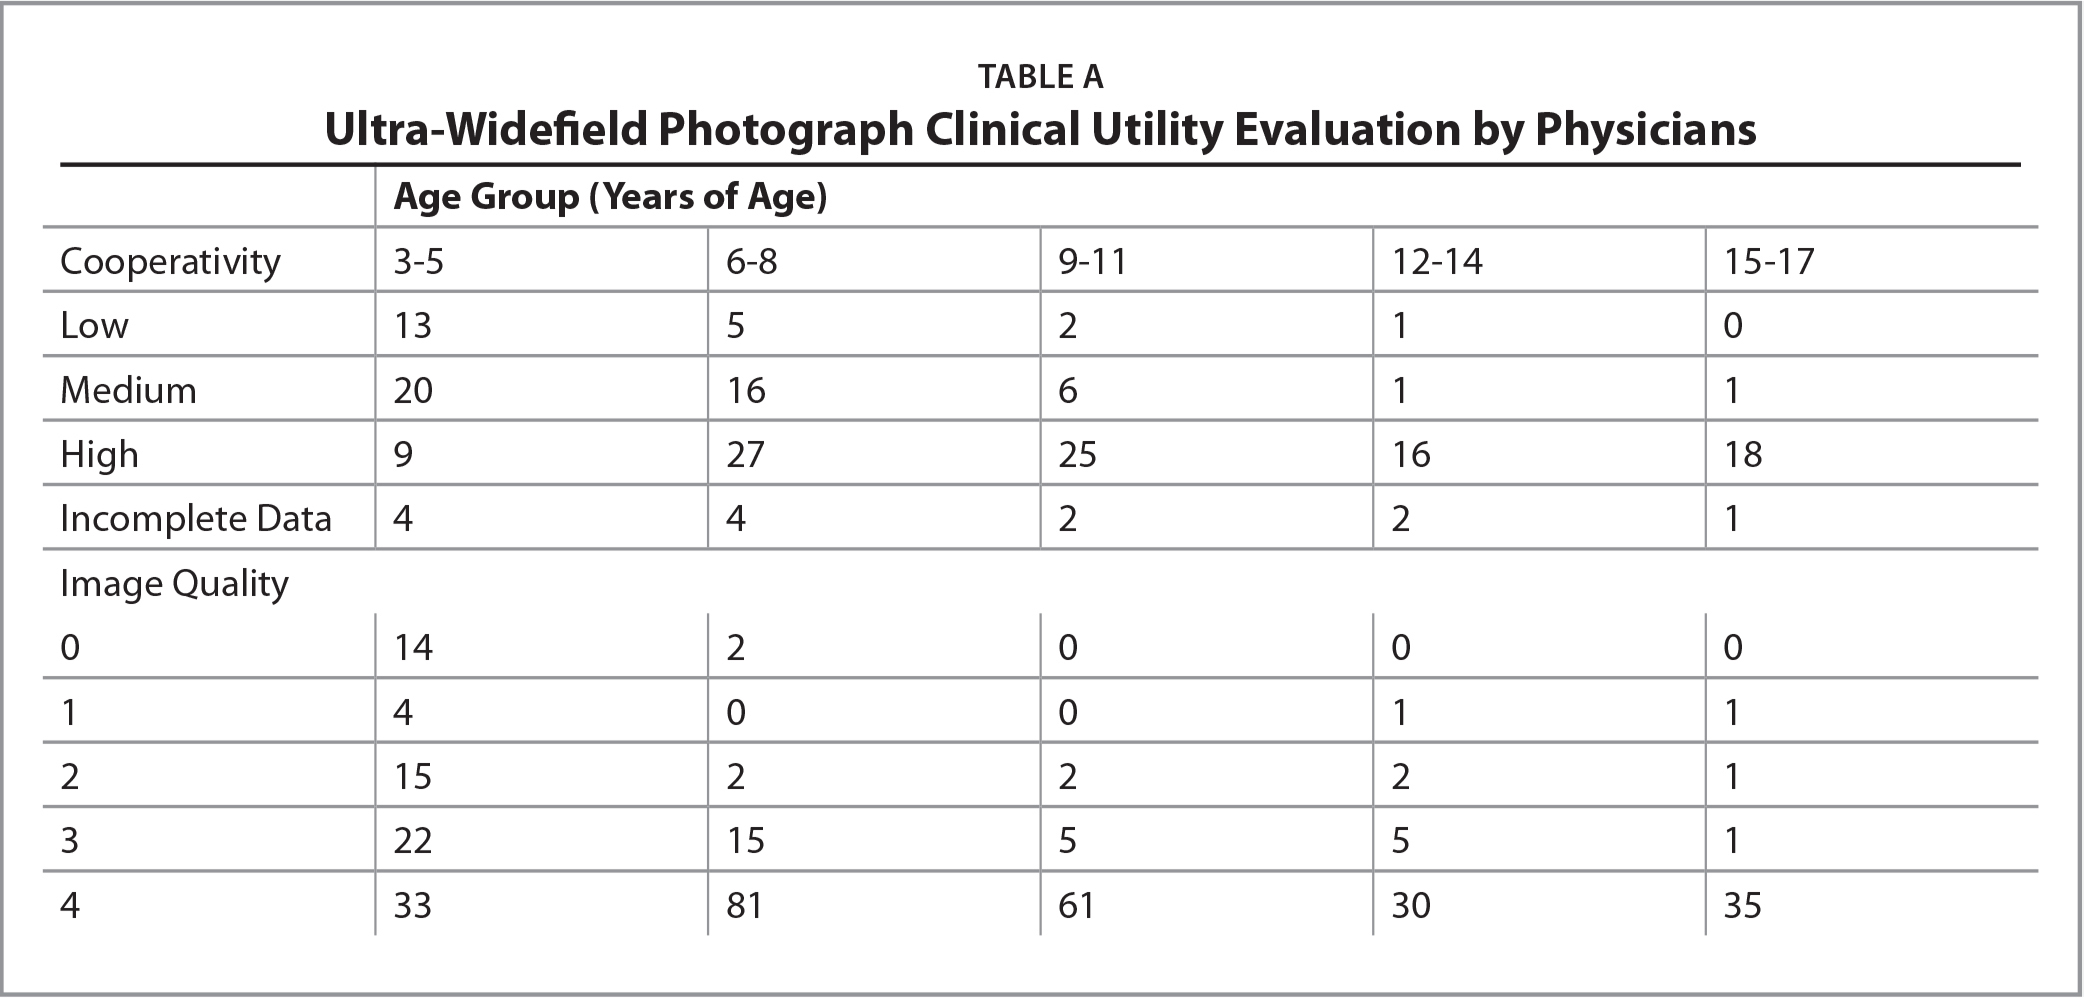 Ultra-Widefield Photograph Clinical Utility Evaluation by Physicians